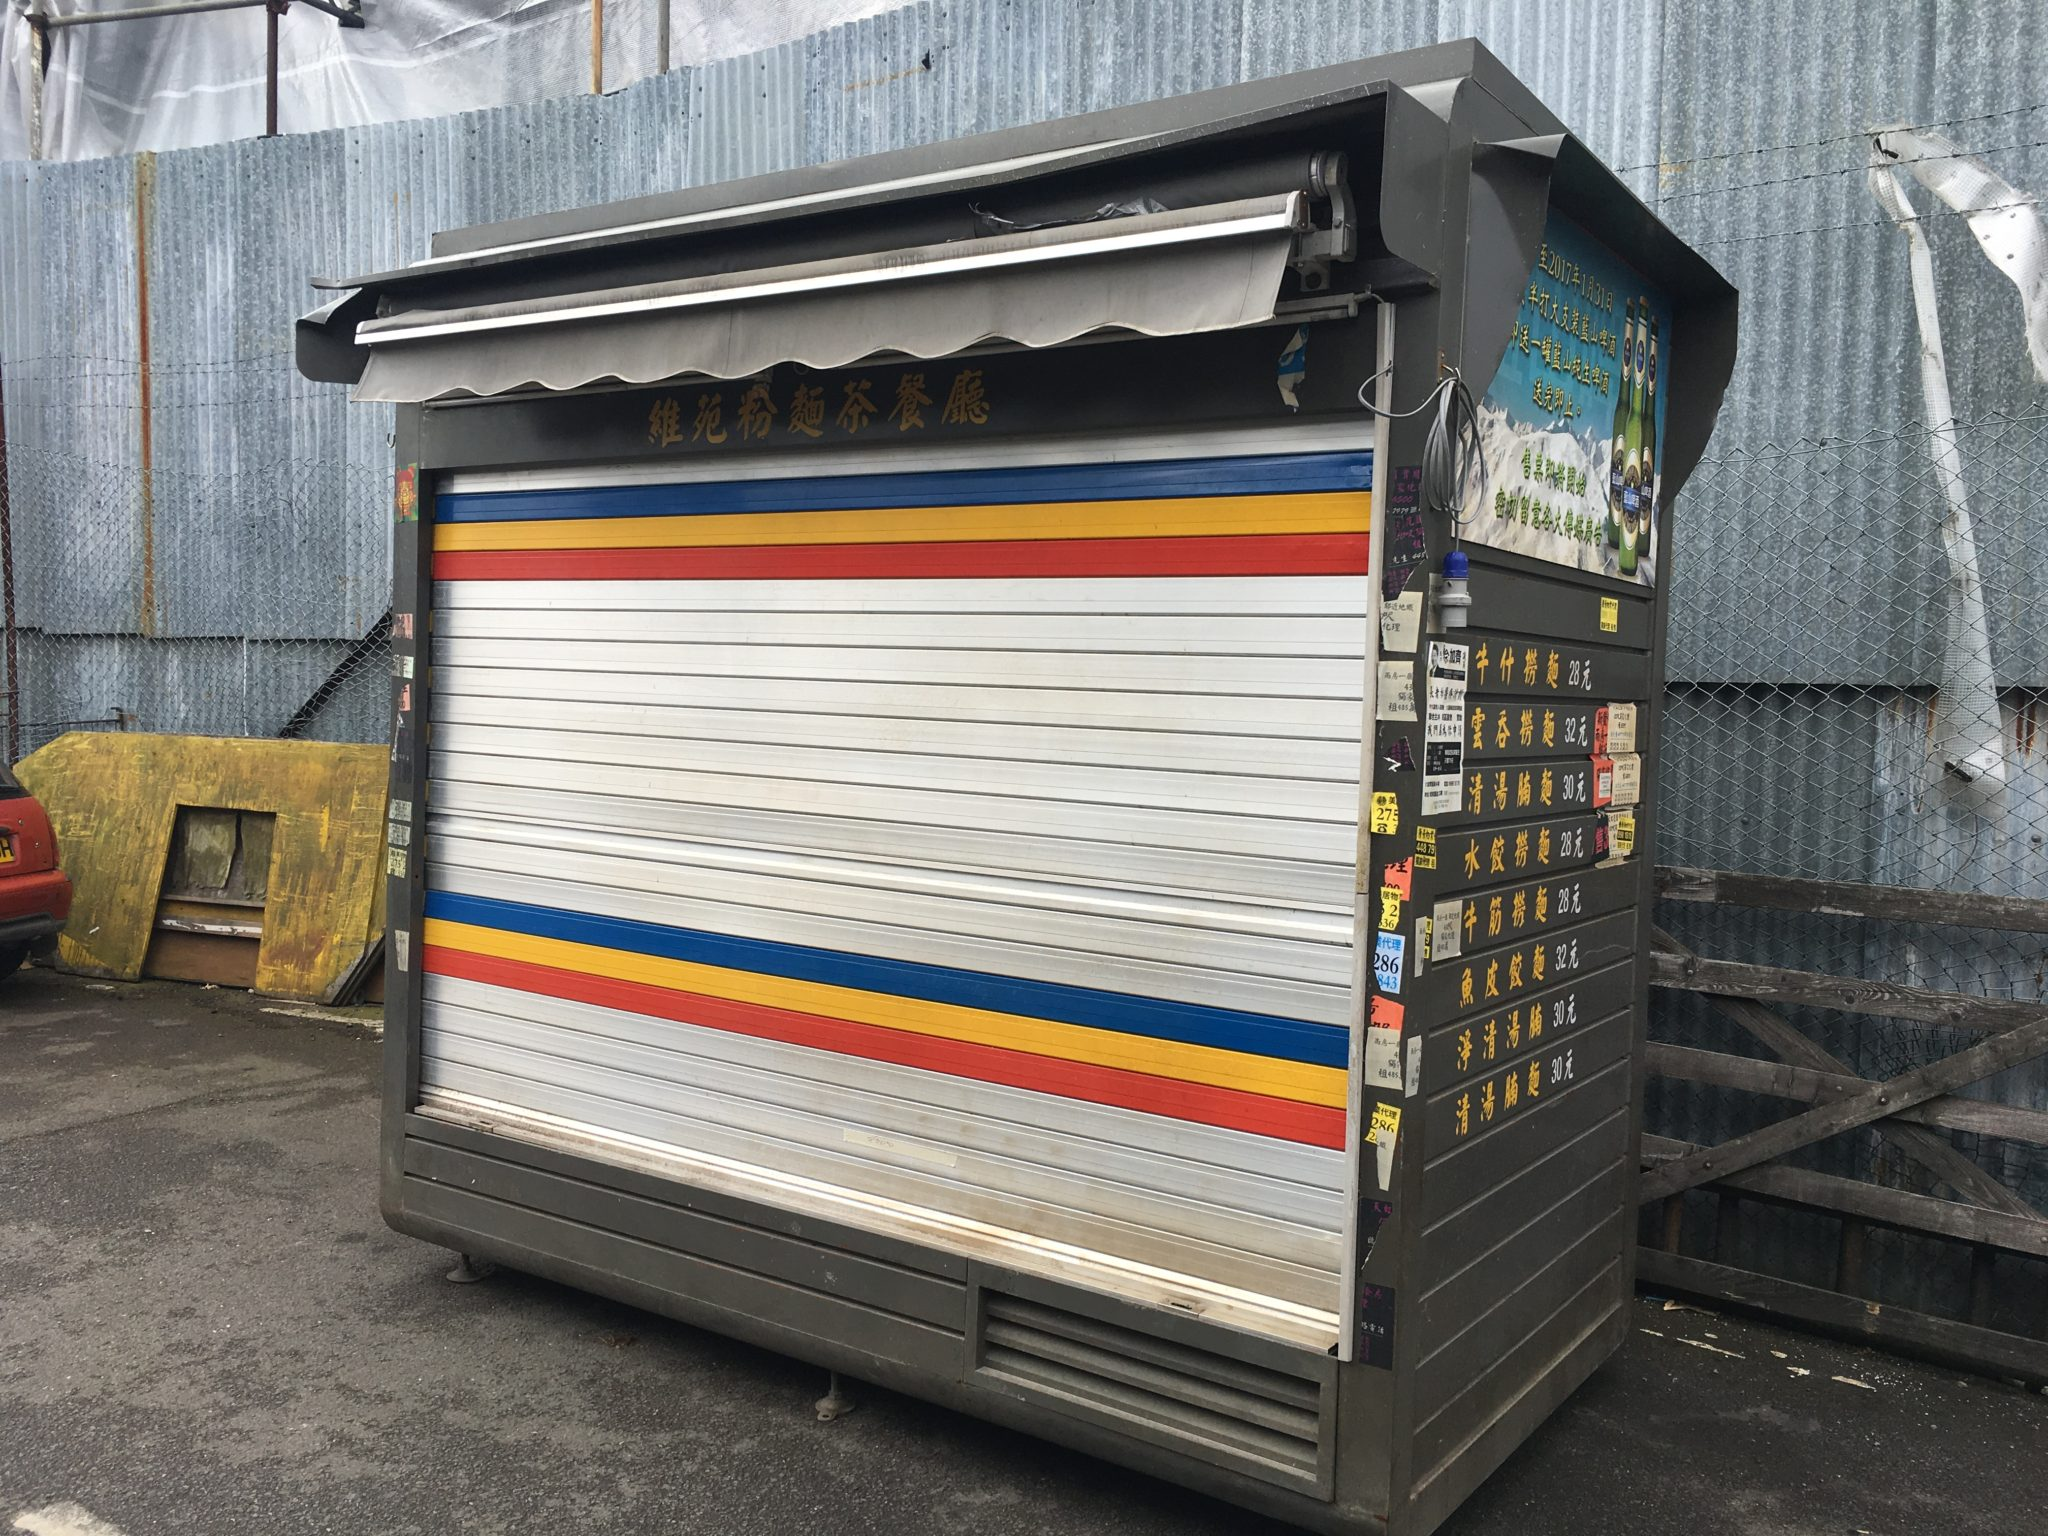 Newspaper/shop Kiosk With Awning -